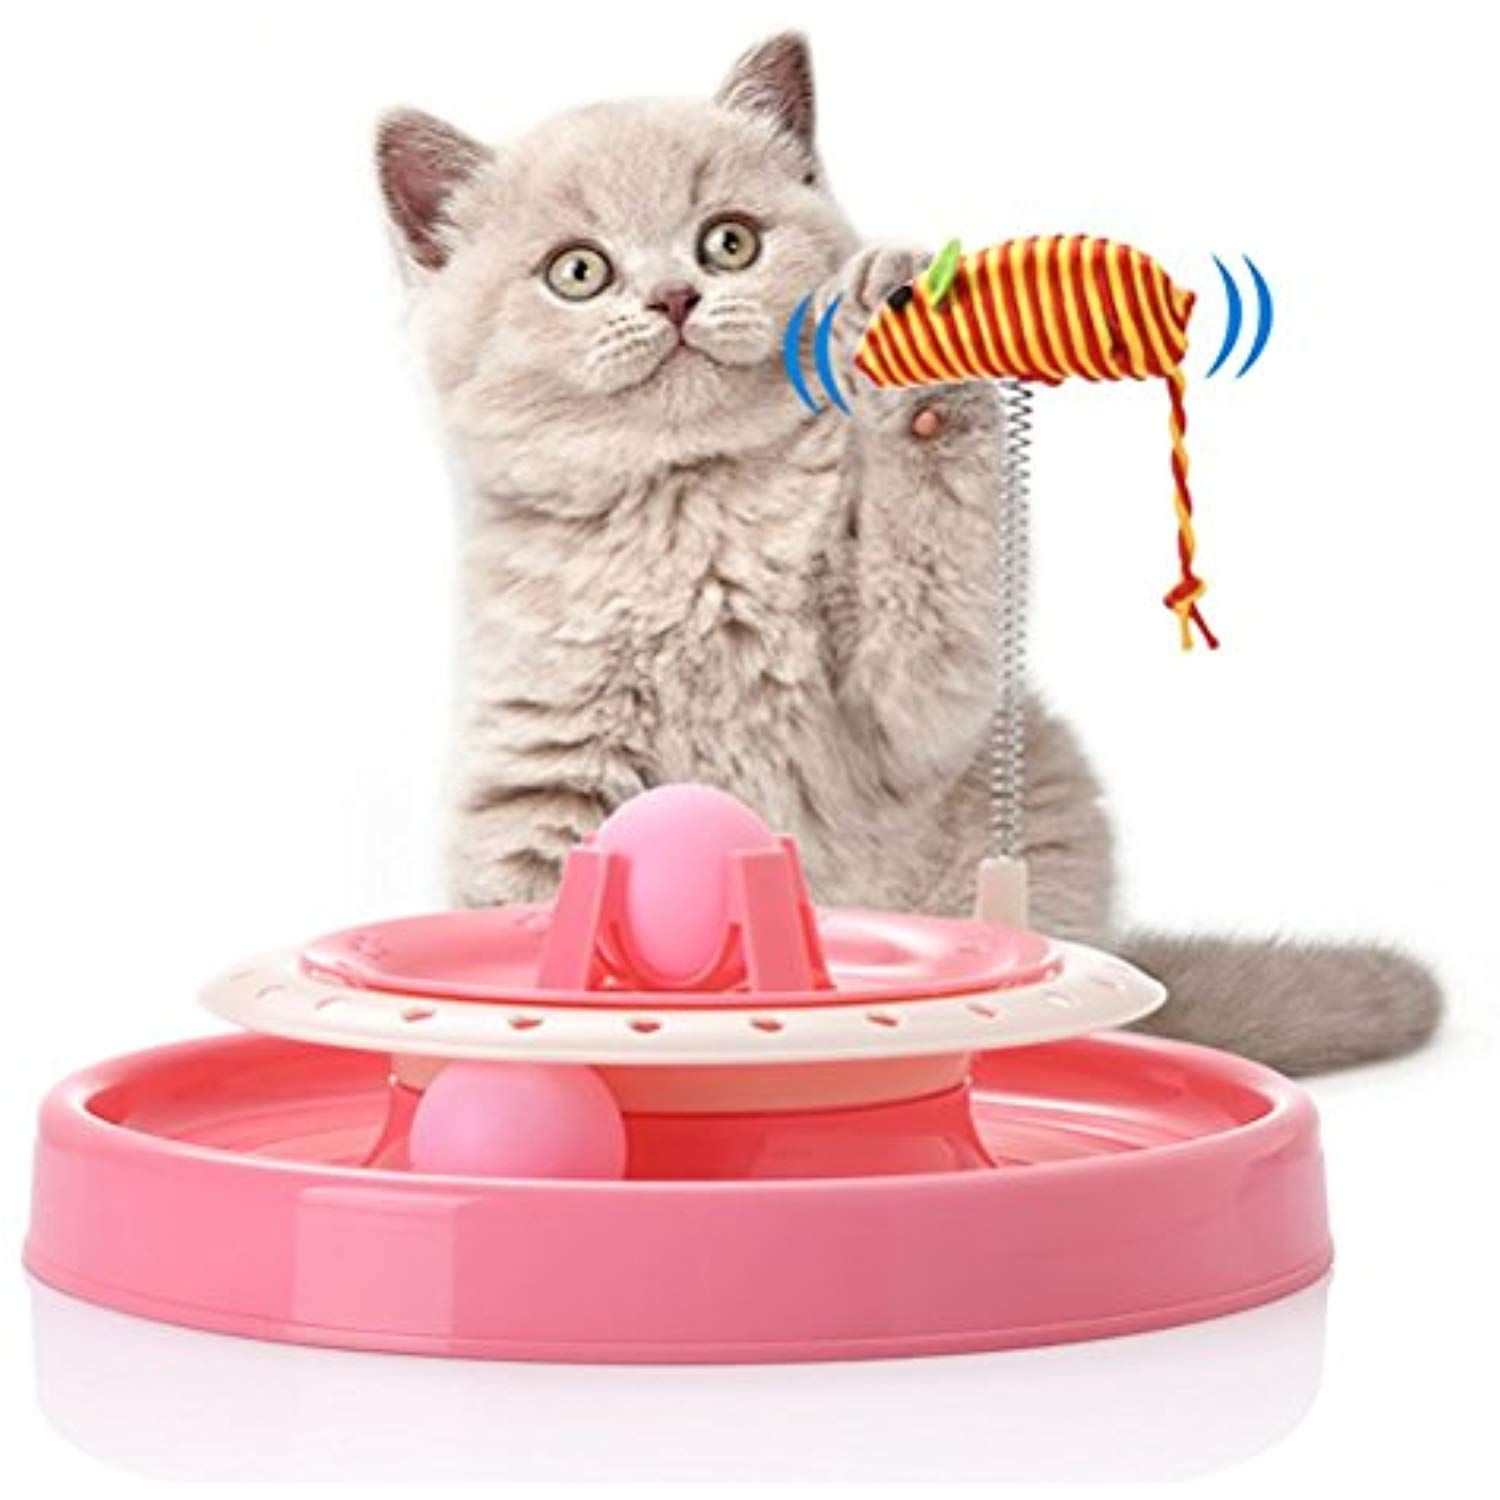 Dan Amazing Cat Roller Toy By Ball And Track Toy Endless Interactive Play And Mental Physical Exercise For Kittens Click On T Pet Toys Cat Toys Pet Cat Toys